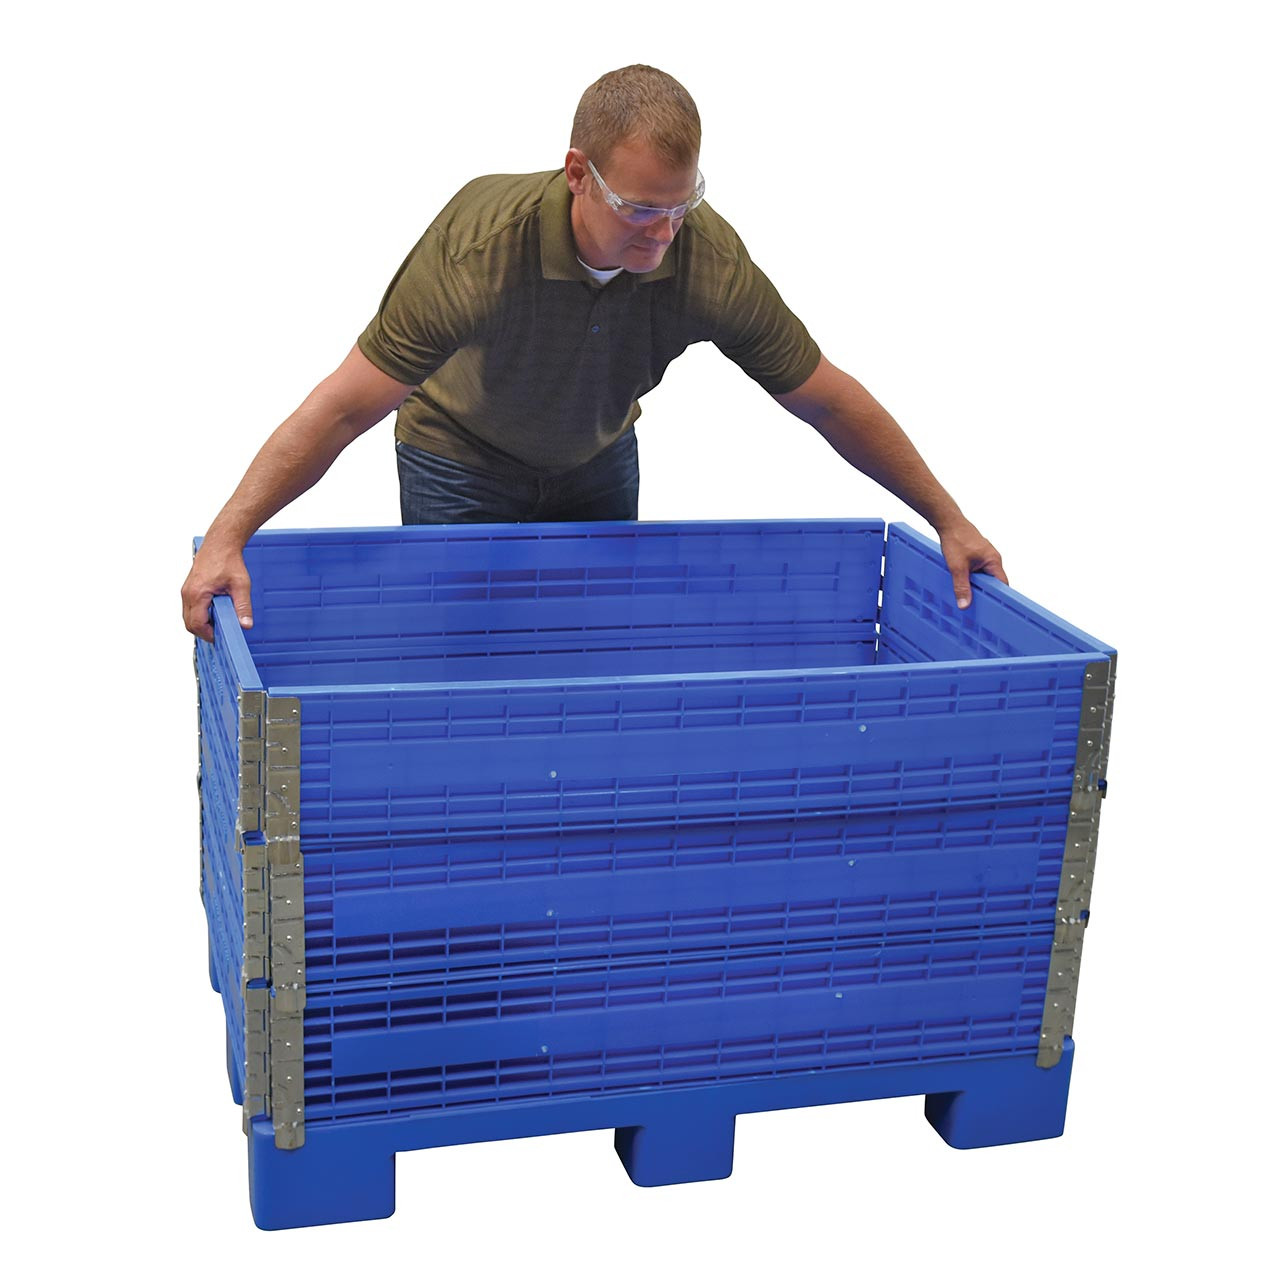 This folding container is each to assemble and add levels to